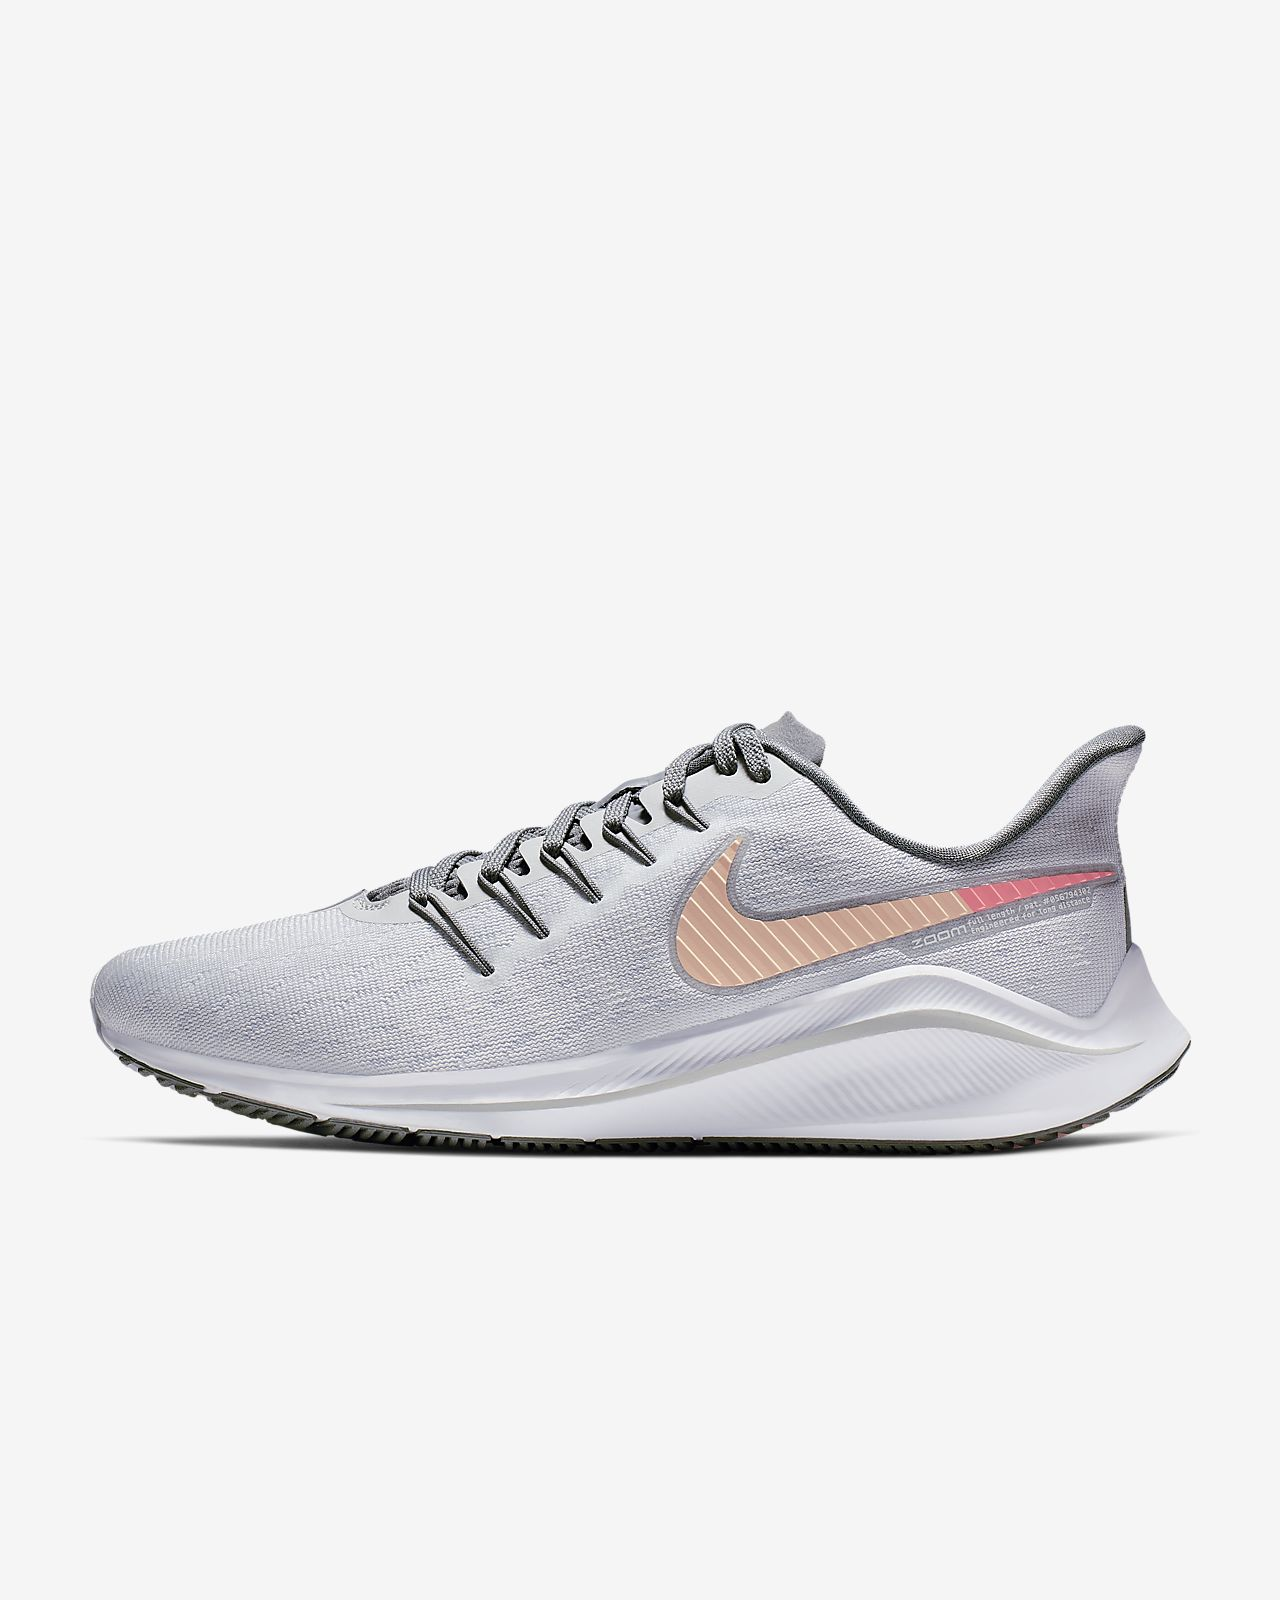 sports shoes 71834 15c8a ... Chaussure de running Nike Air Zoom Vomero 14 pour Femme